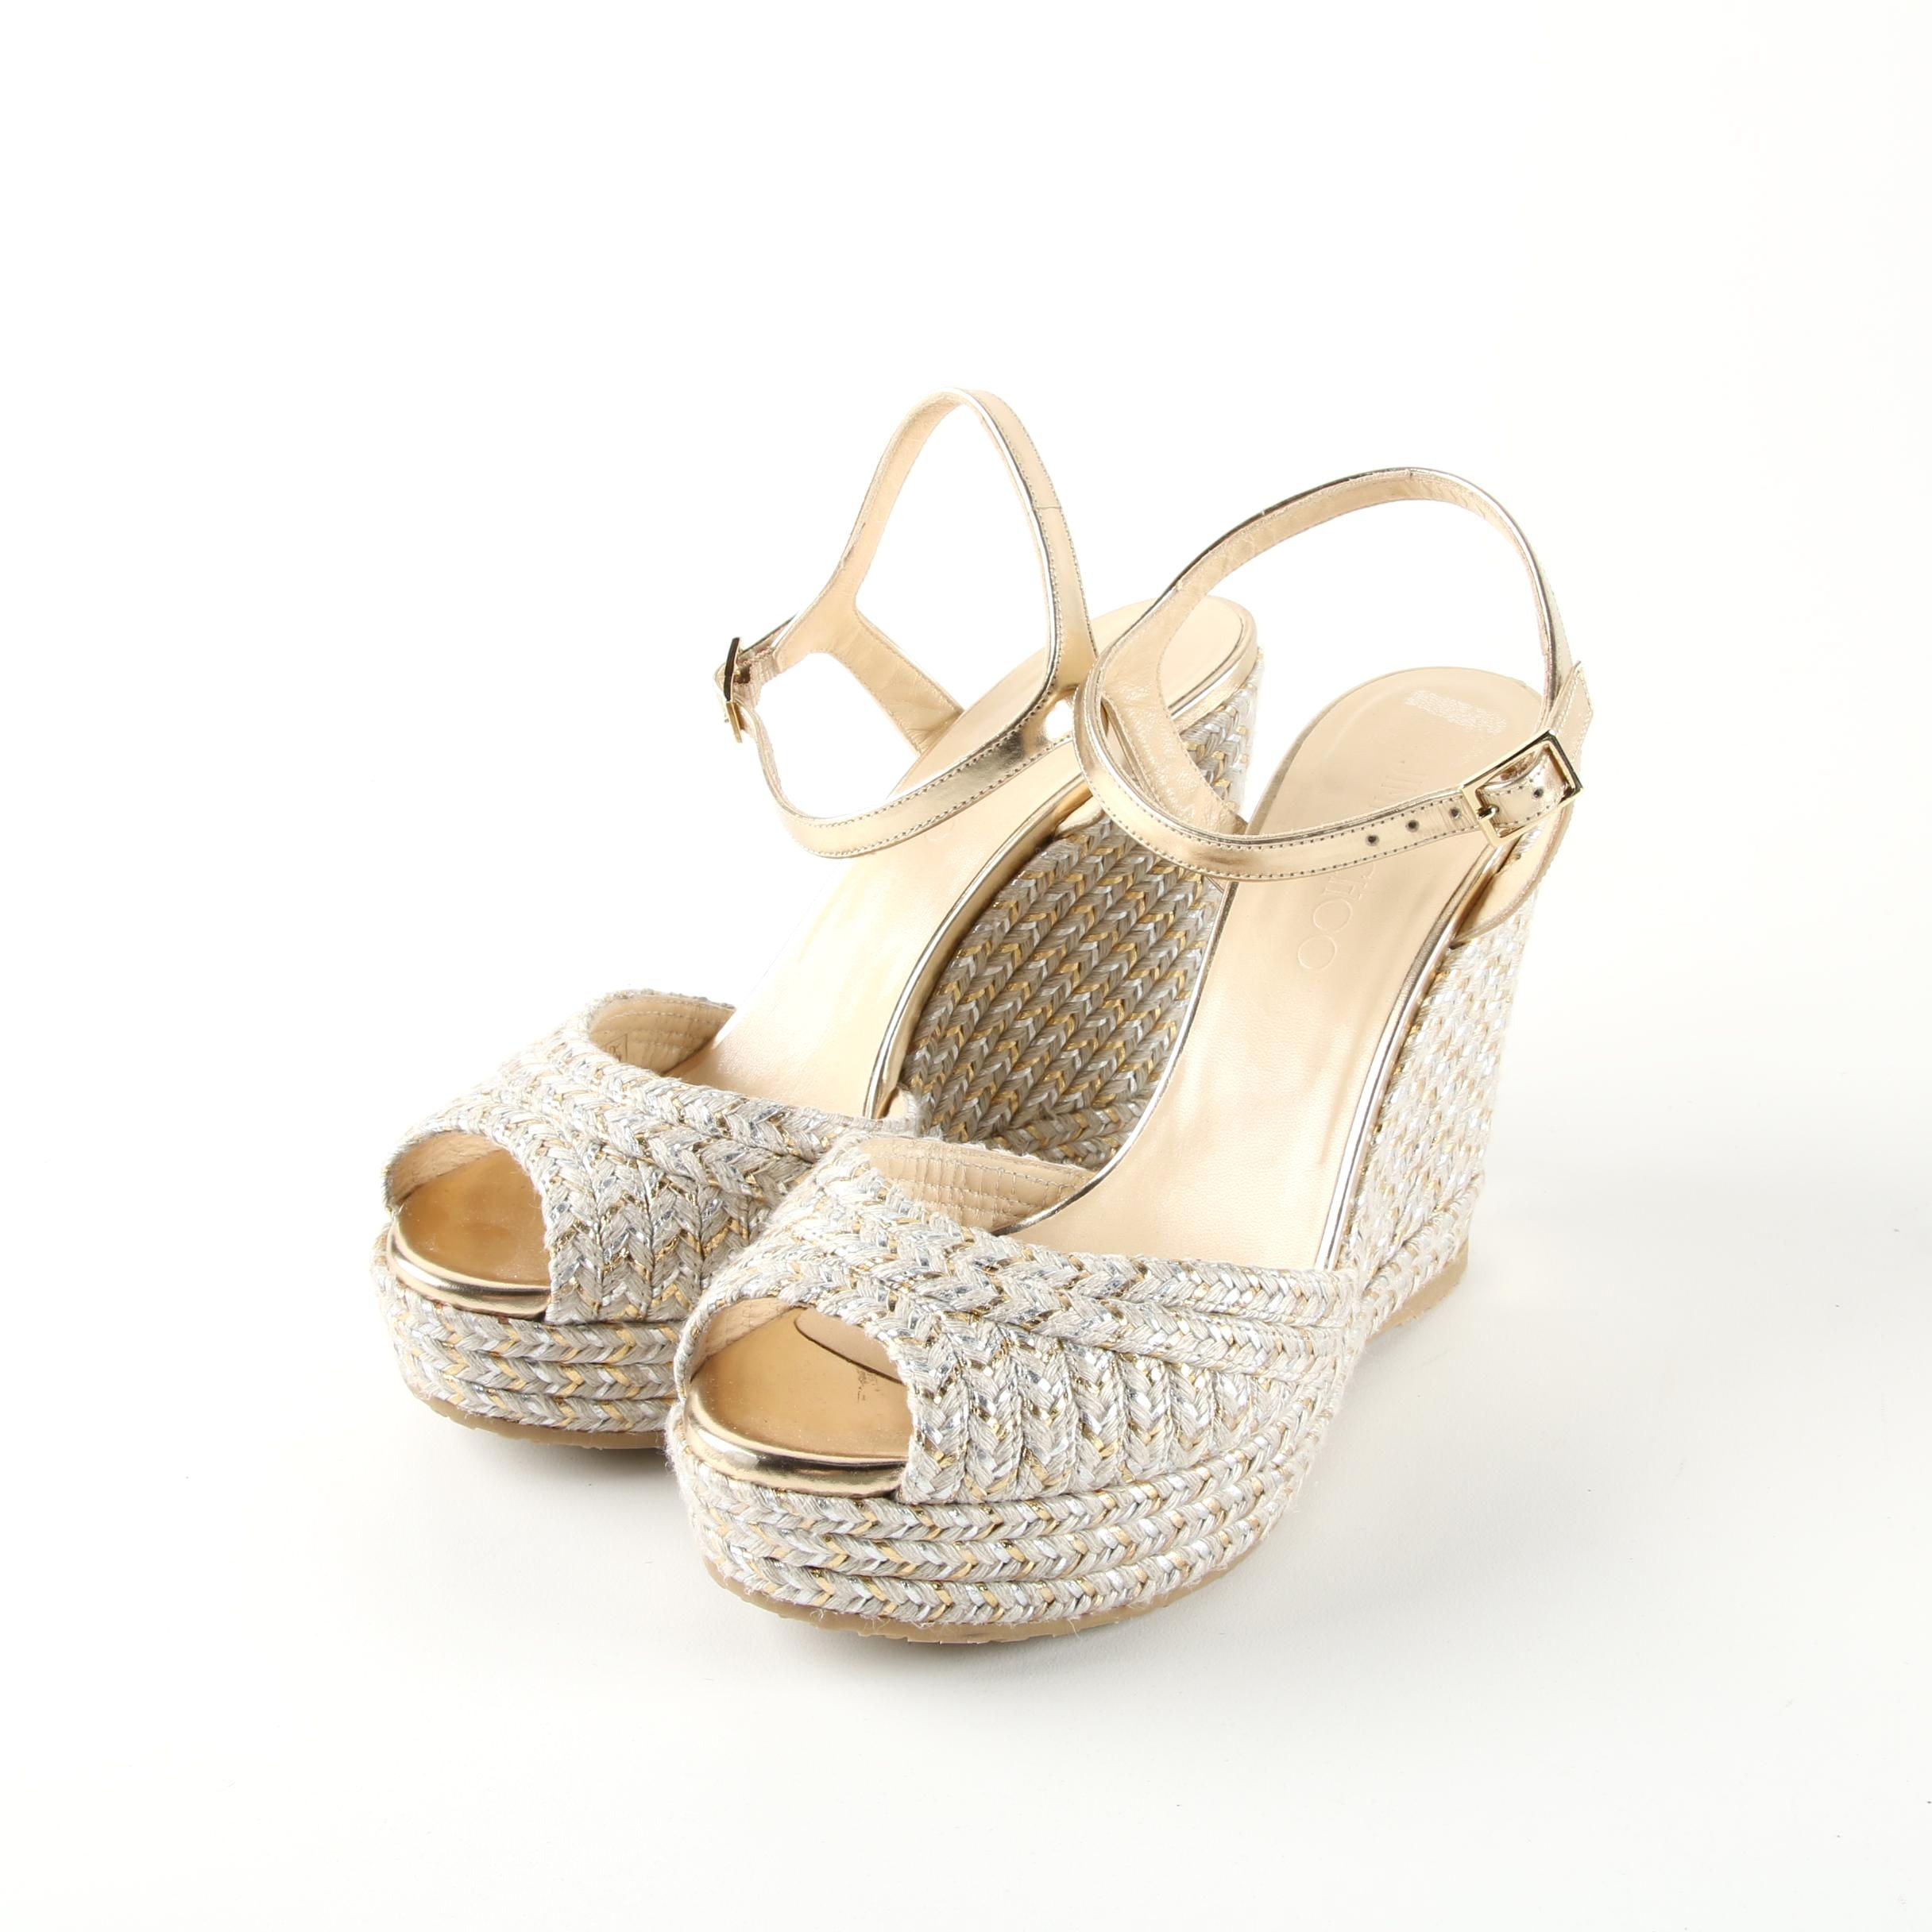 Jimmy Choo Off-White and Gold Woven and Gold Metallic Leather Espadrille Wedges